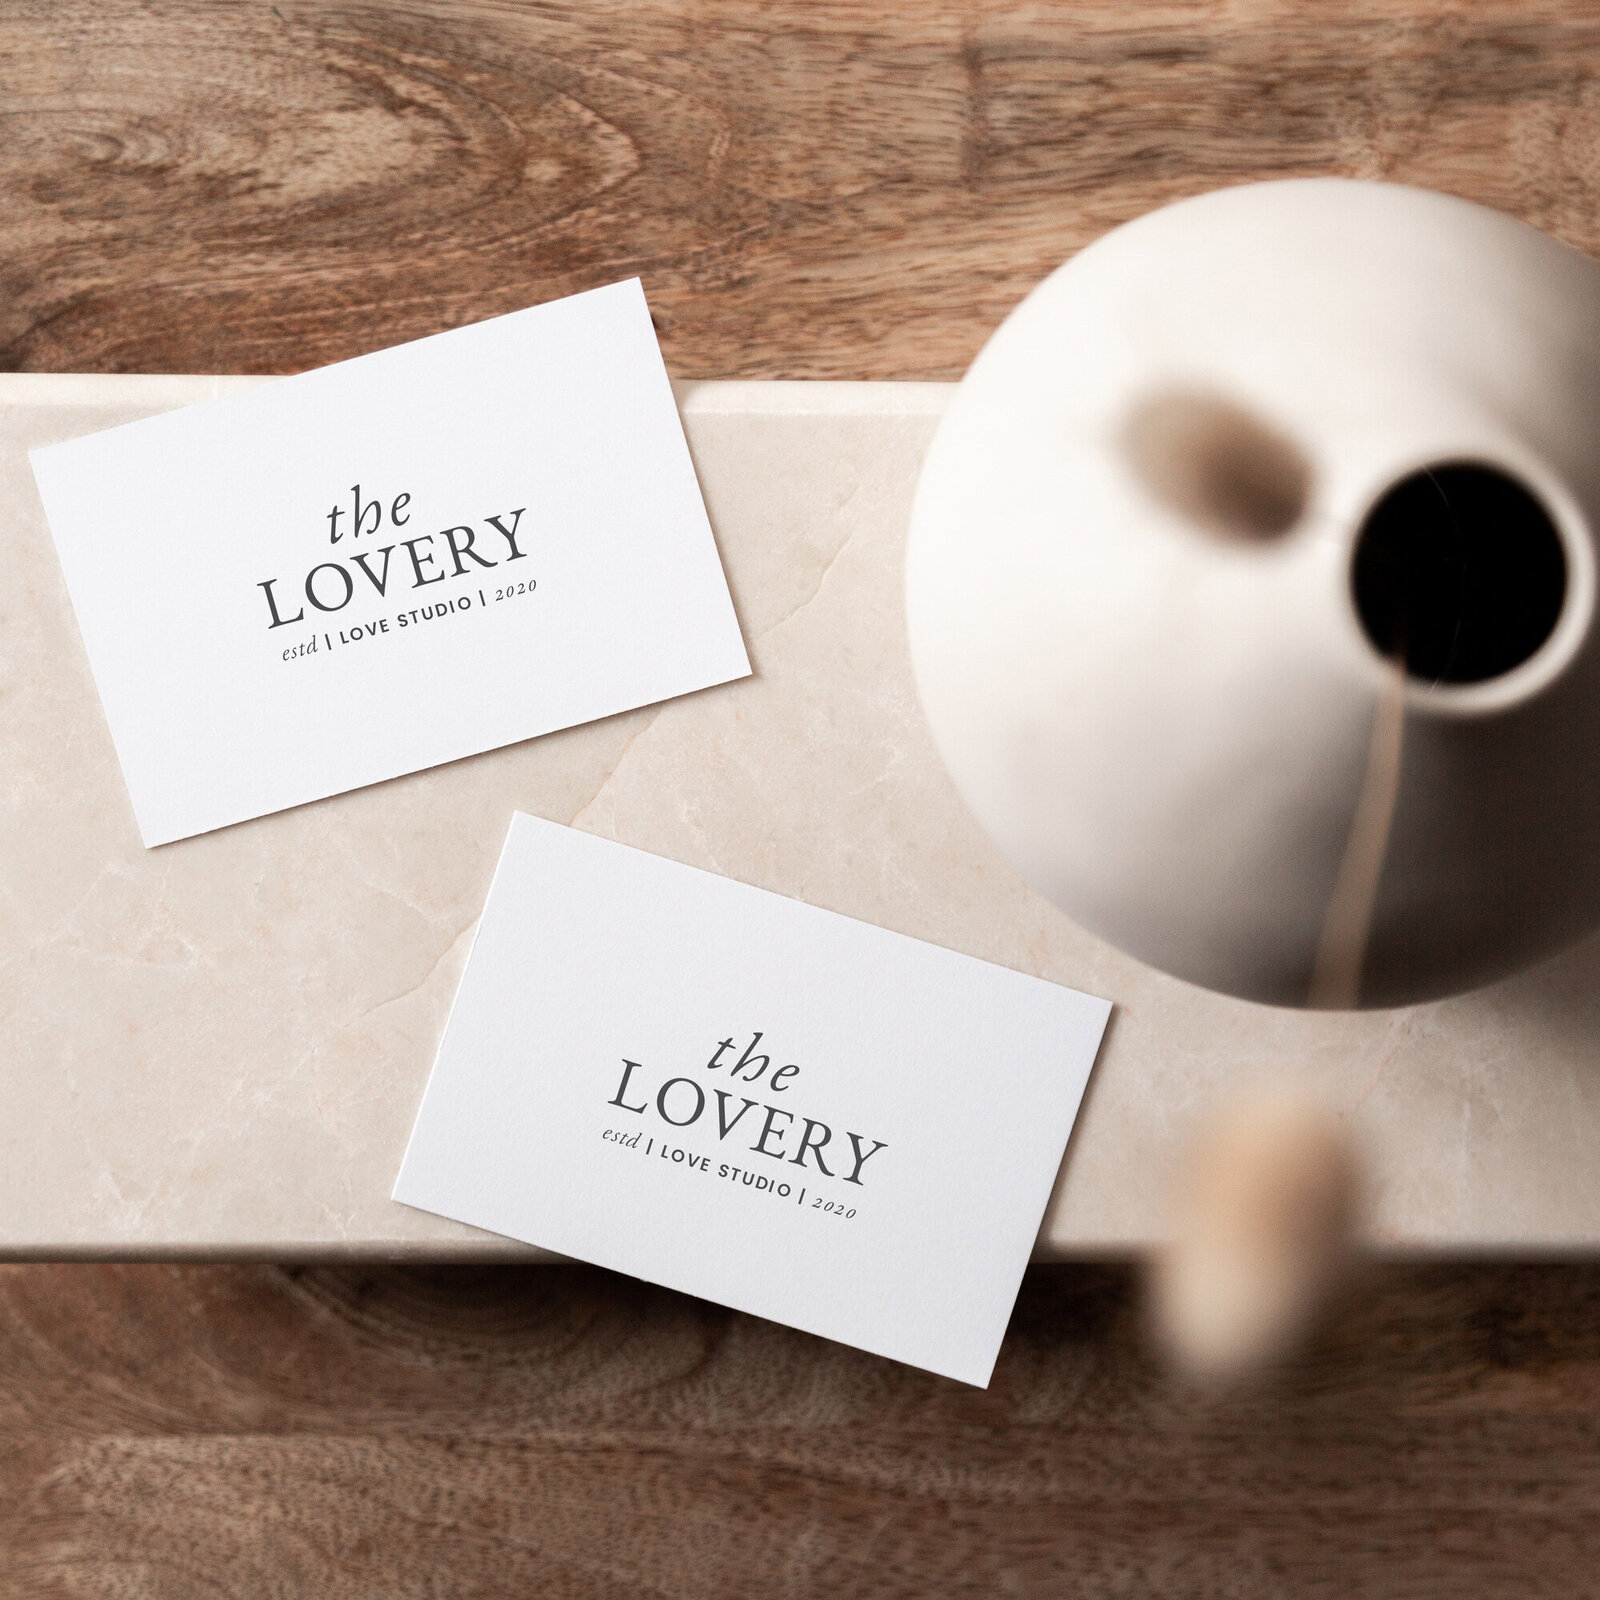 thelovery-businesscard-design-square